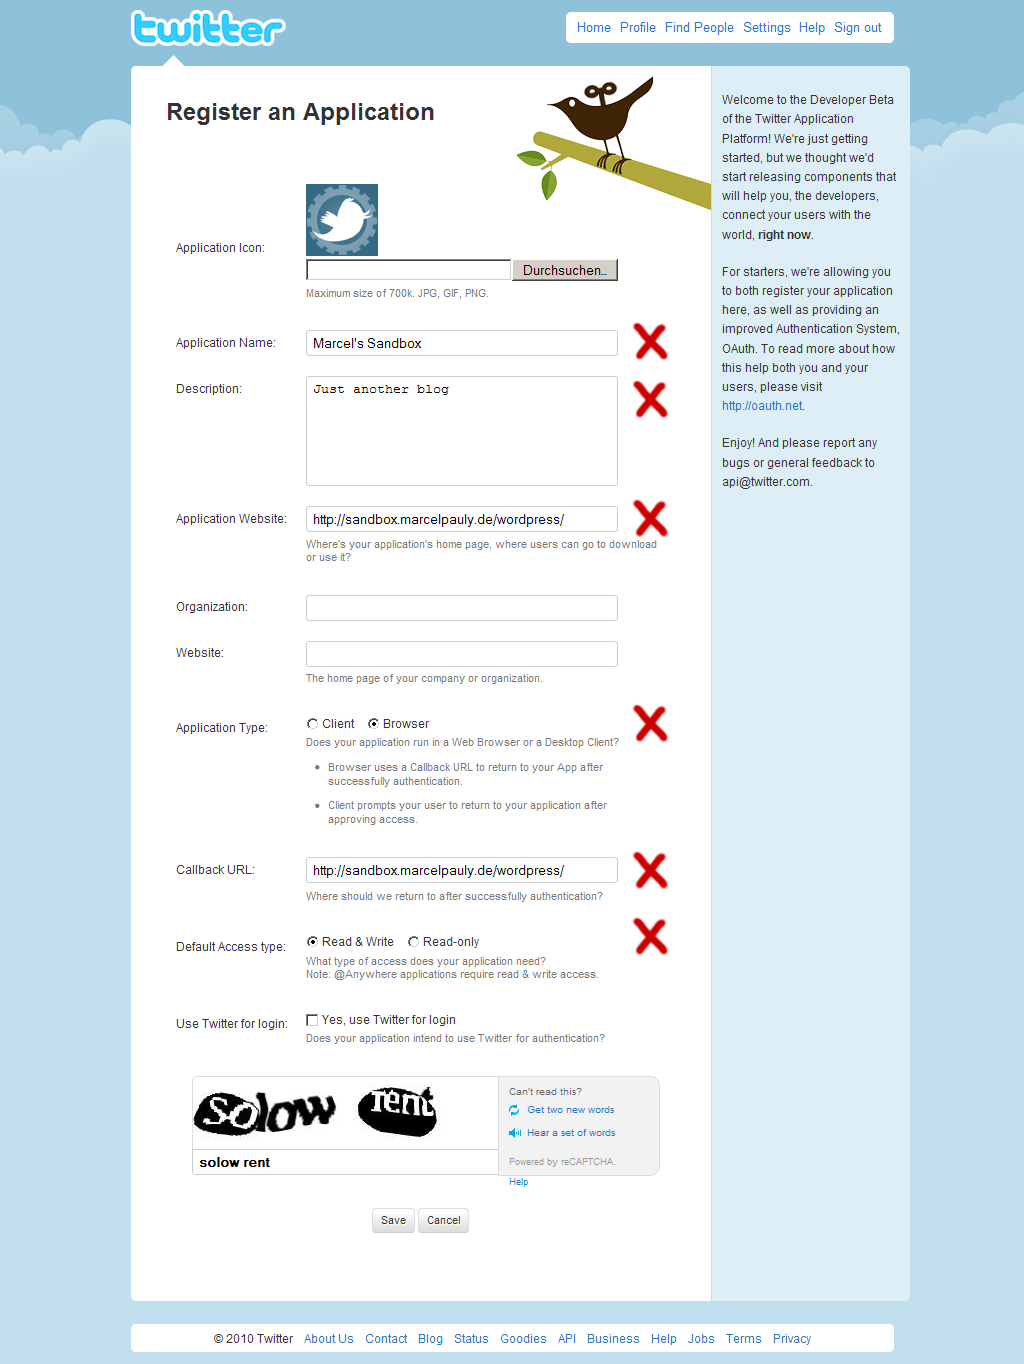 You have to register an own Twitter Application for your blog